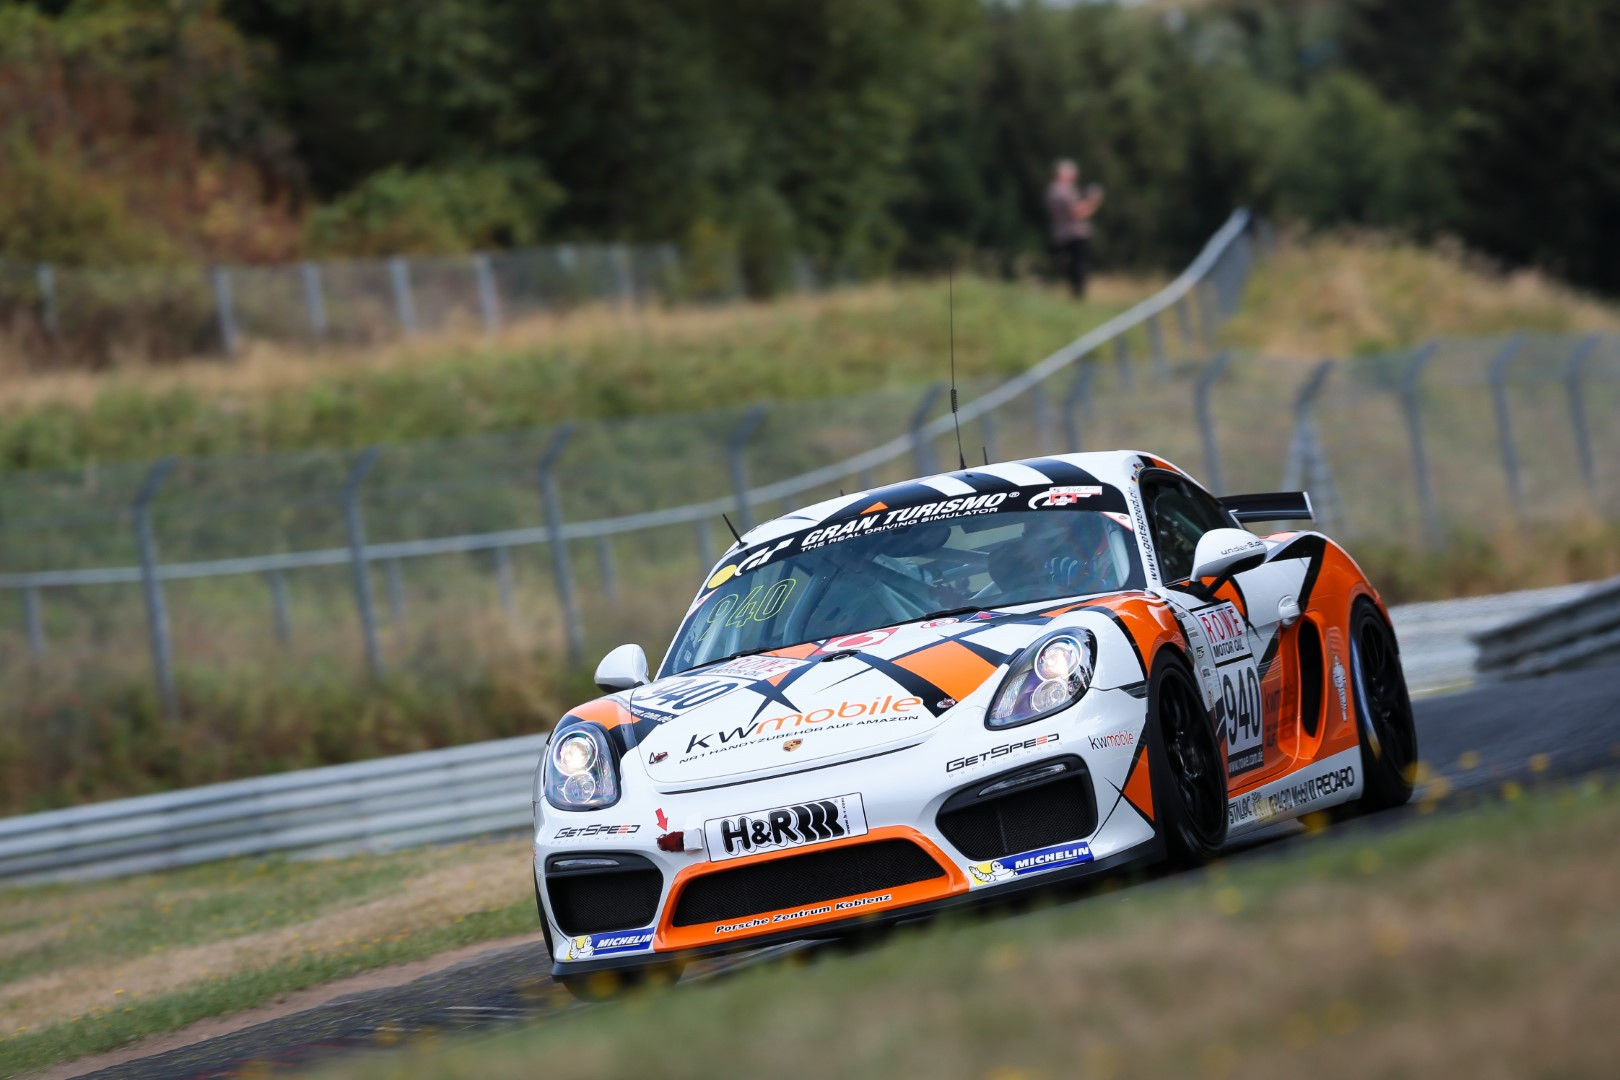 VLN 6. Lauf 2018, Nürburgring-Nordschleife - Foto: Gruppe C Photography; #940 Porsche Cayman GT4 CS, GIGASPEED Team GetSpeed Performance: Max, Jens